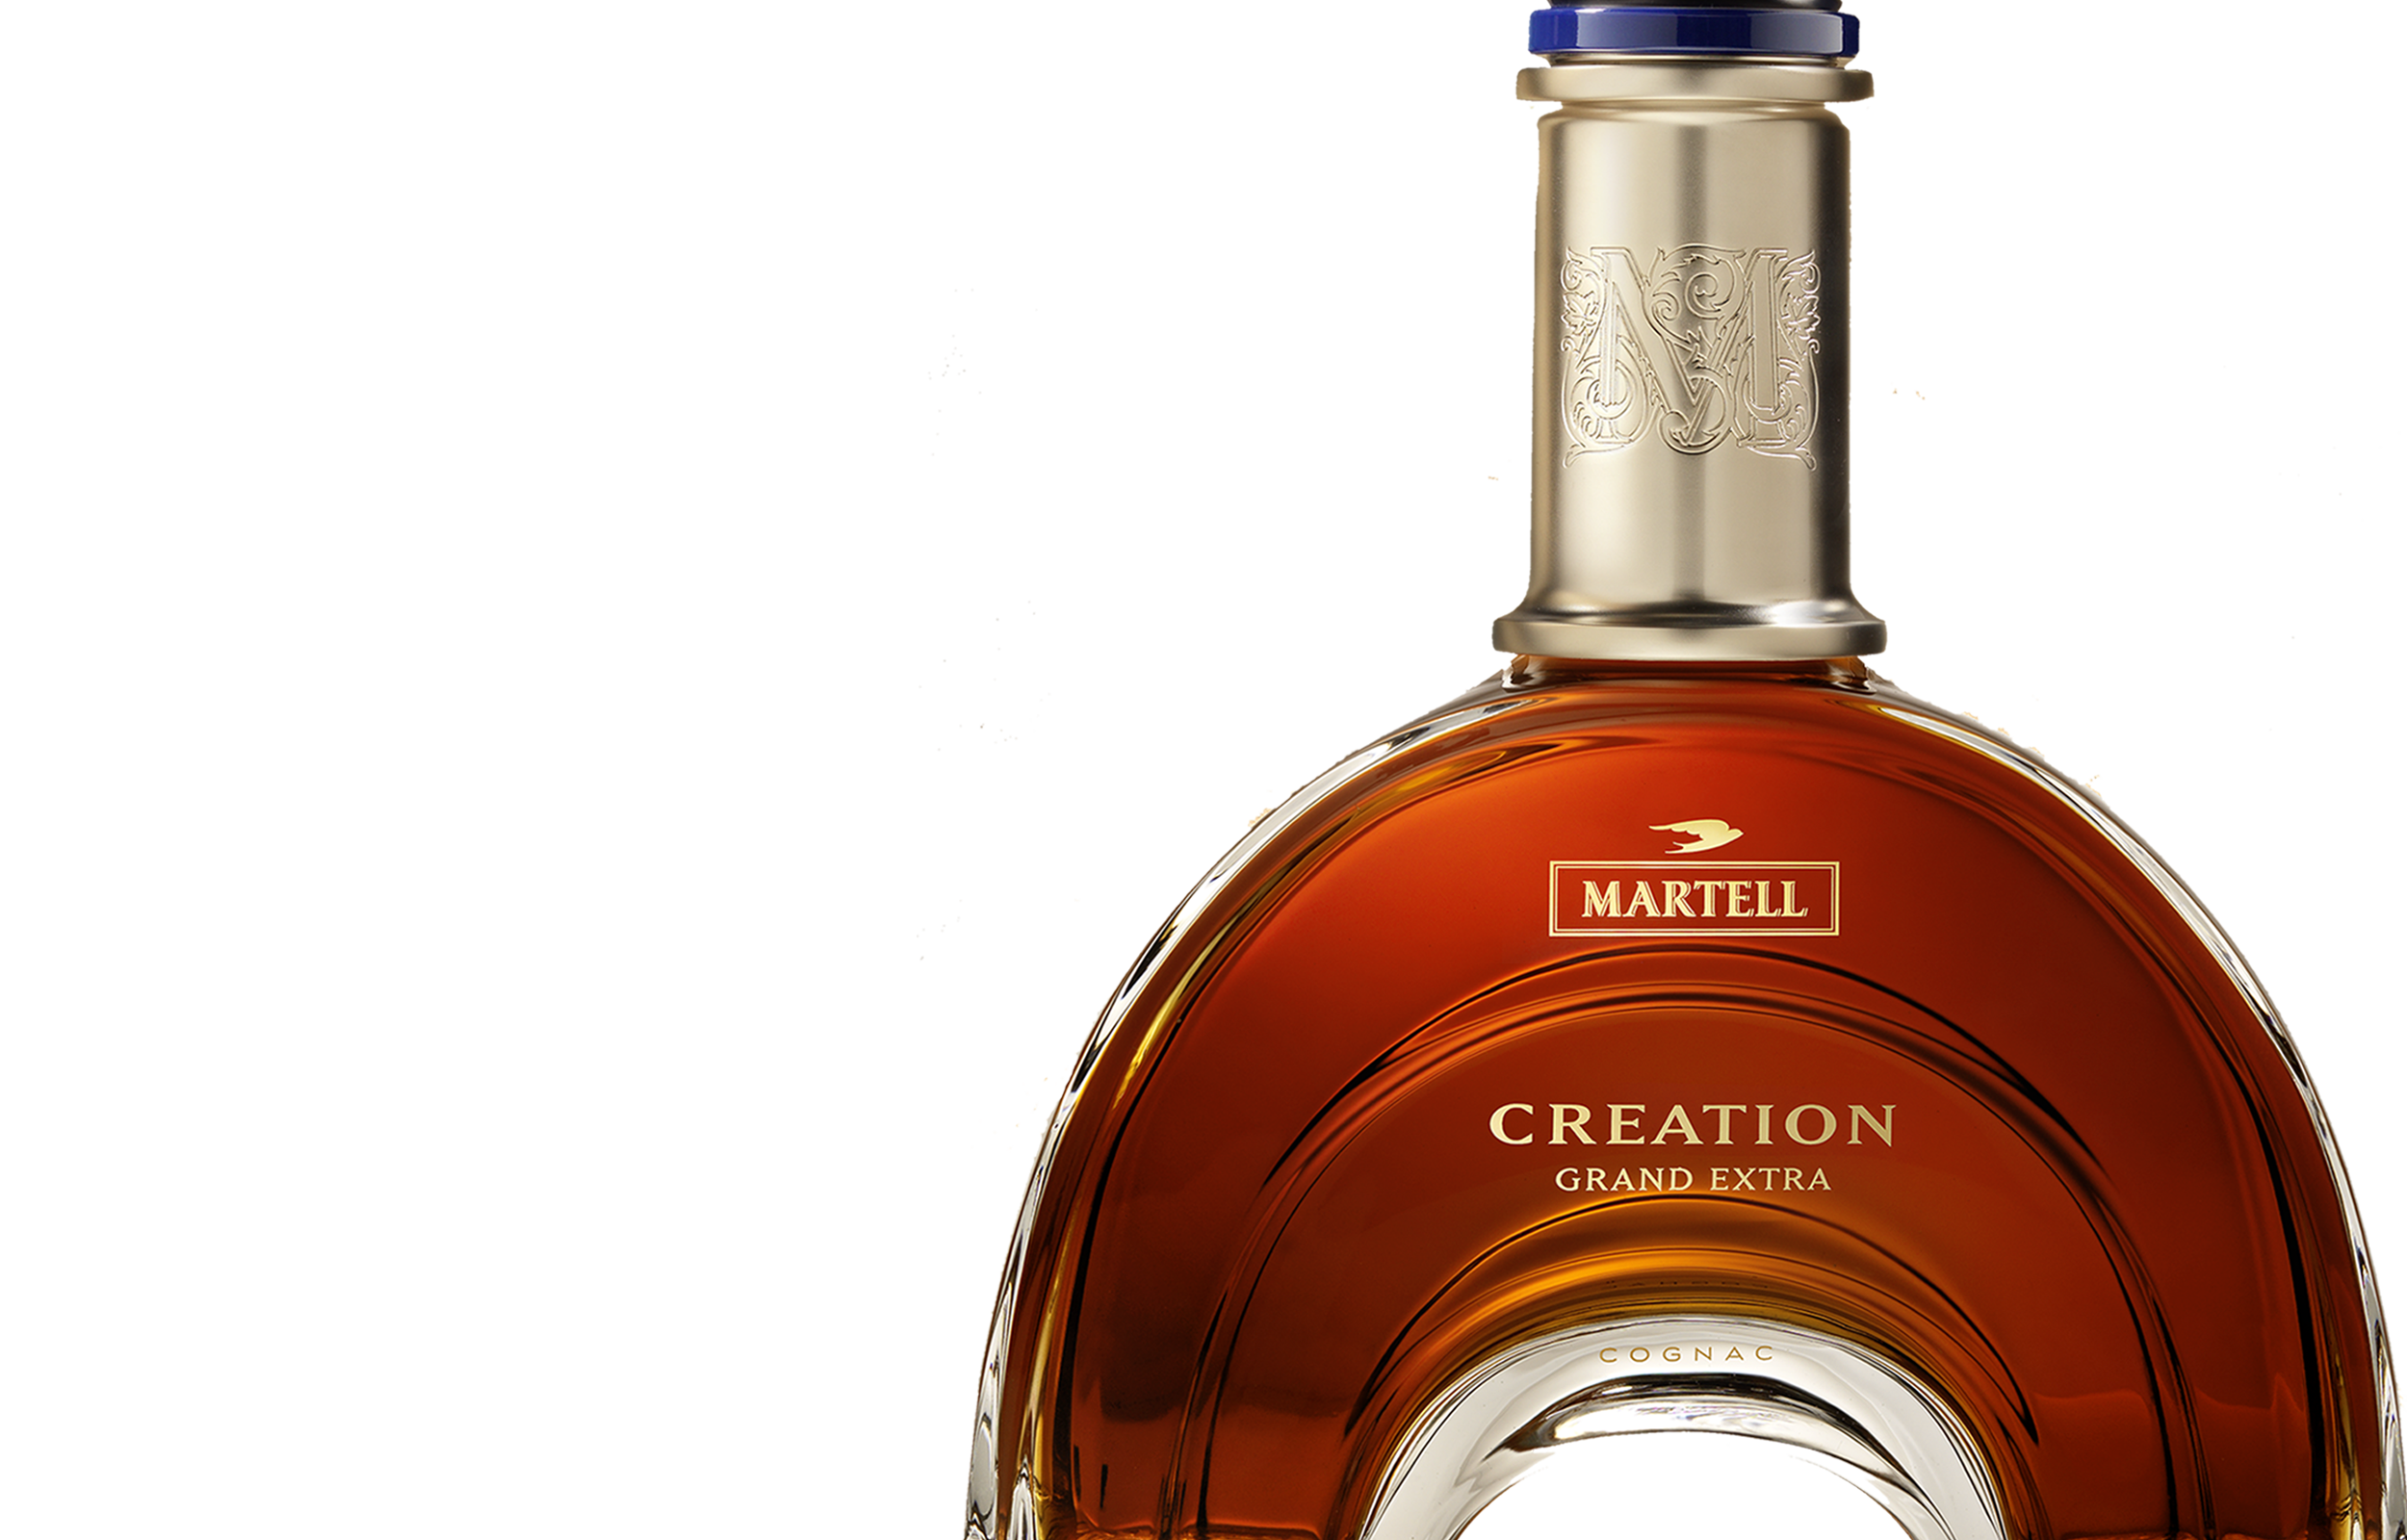 Martell Cognac Grand Extra Bottle